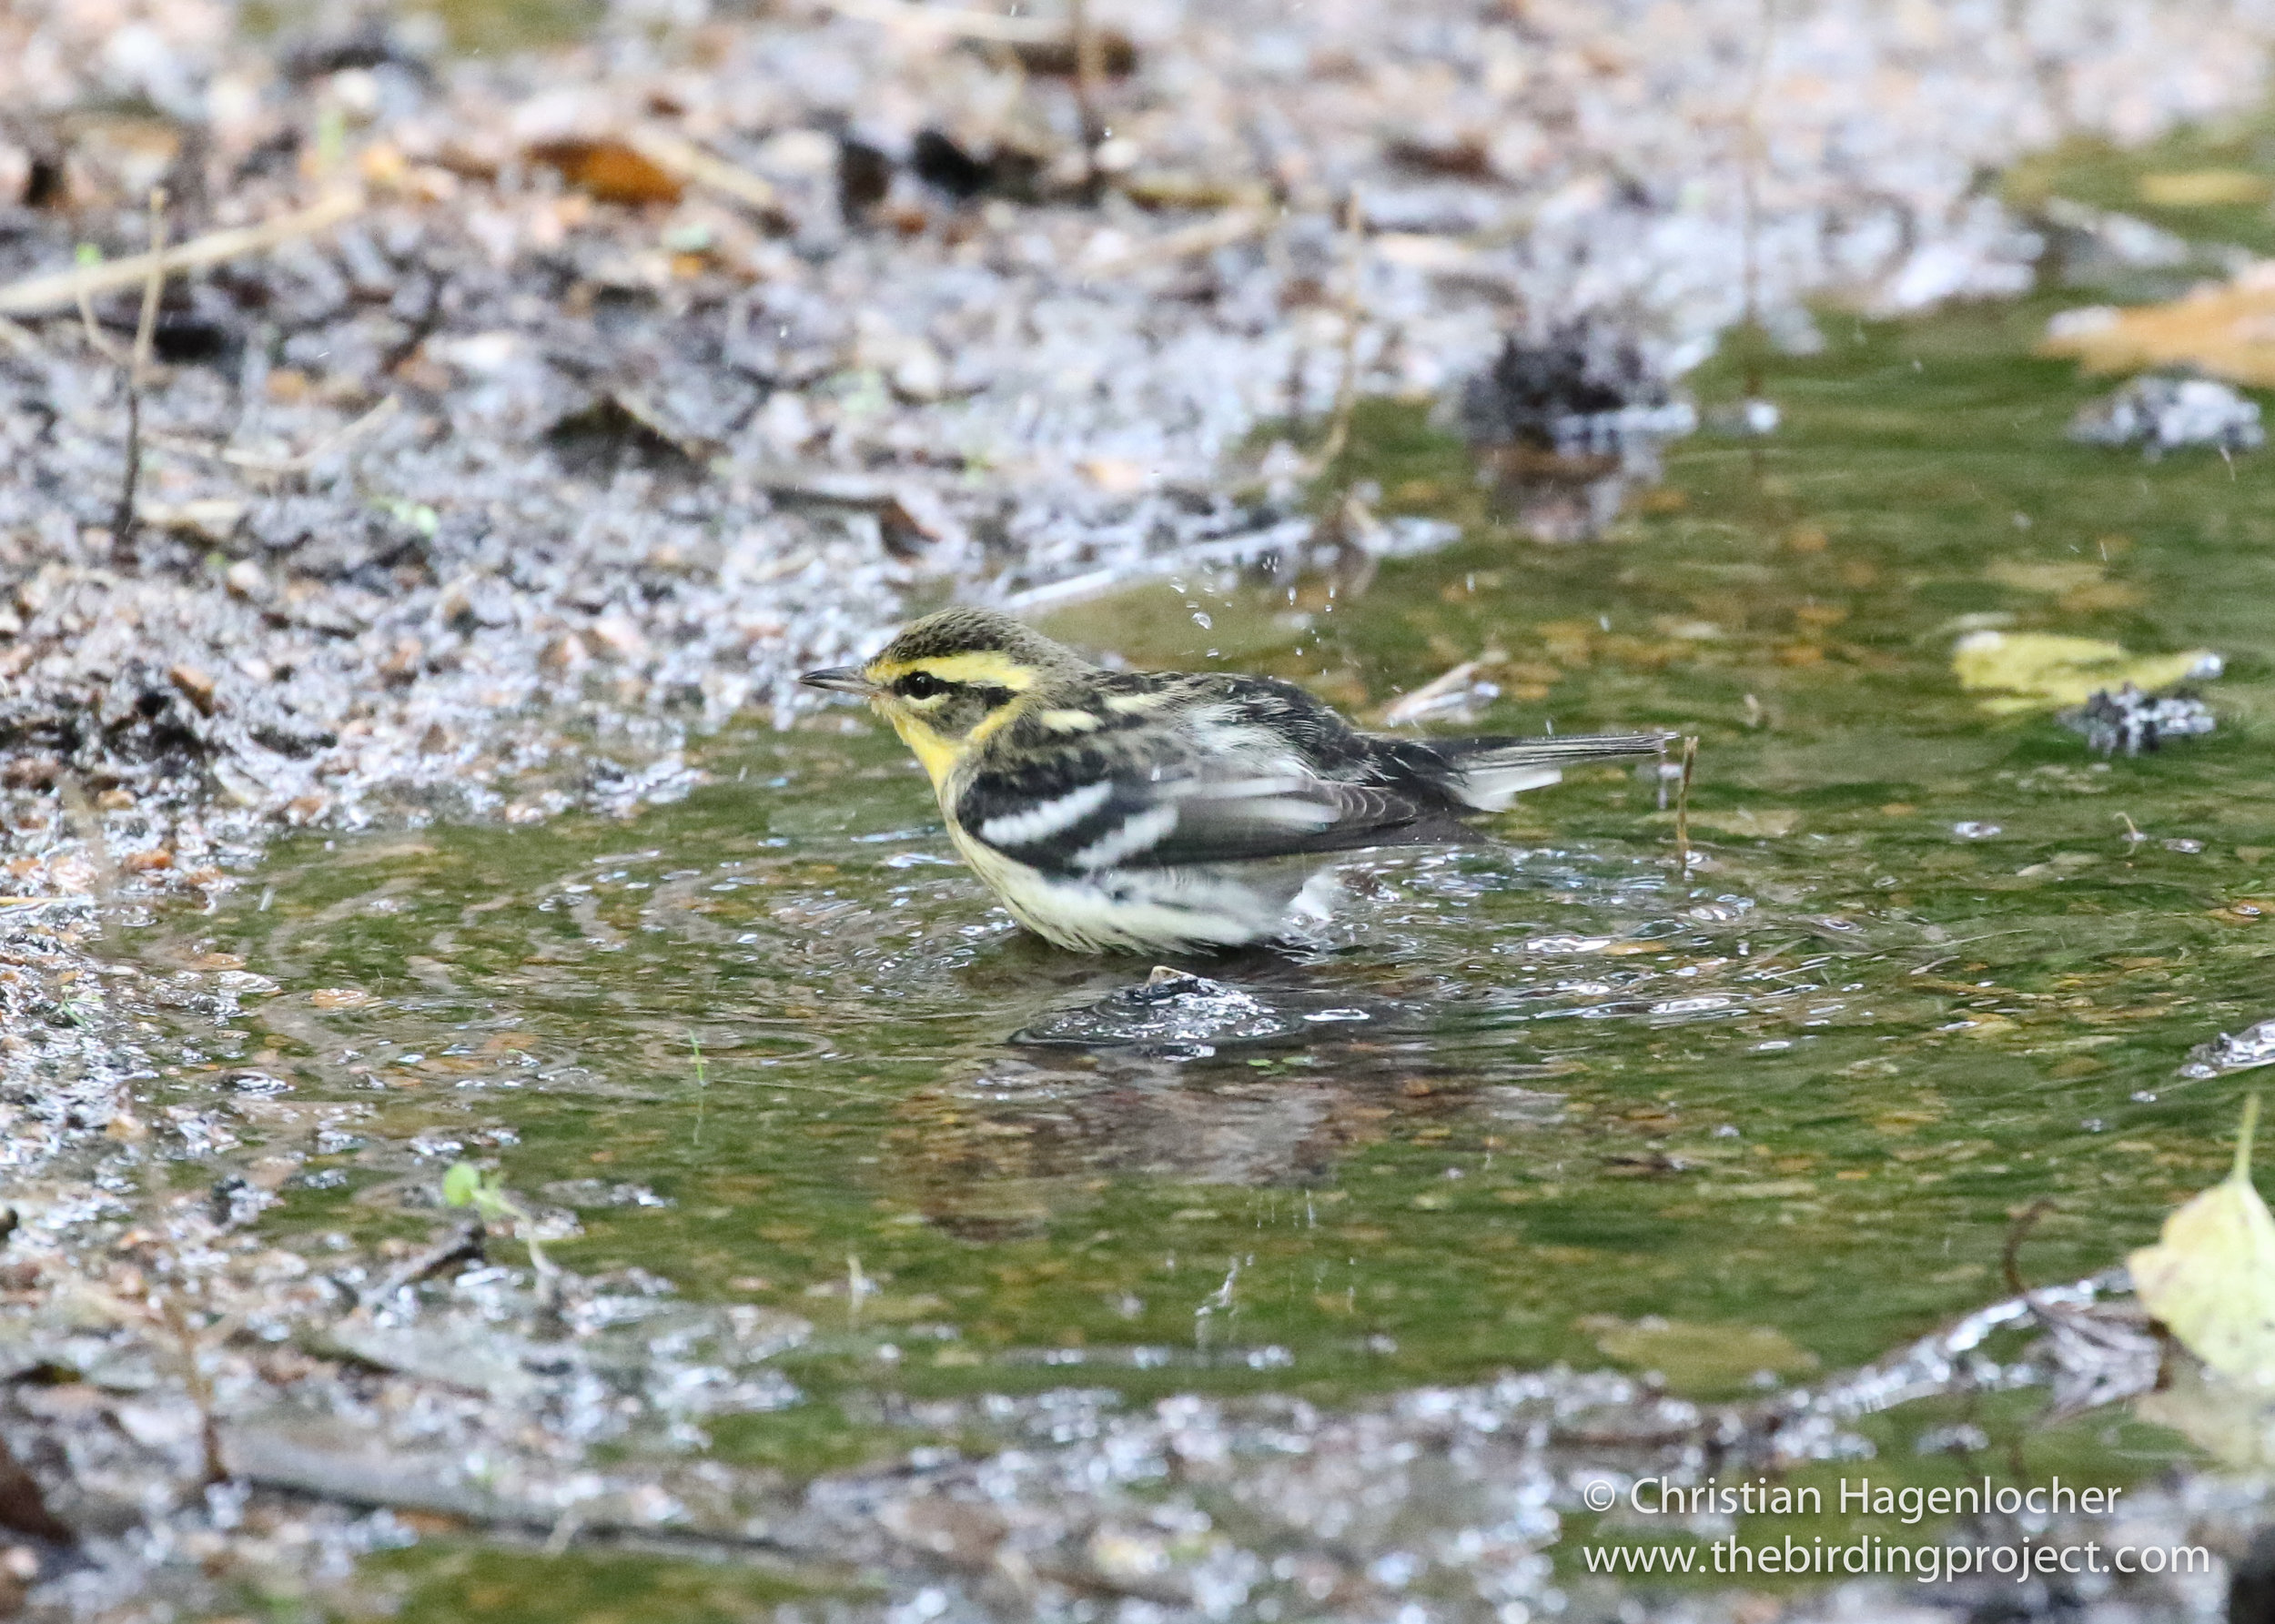 A female Blackburnian Warbler bathes in a stream before returning to the tree tops to feed.